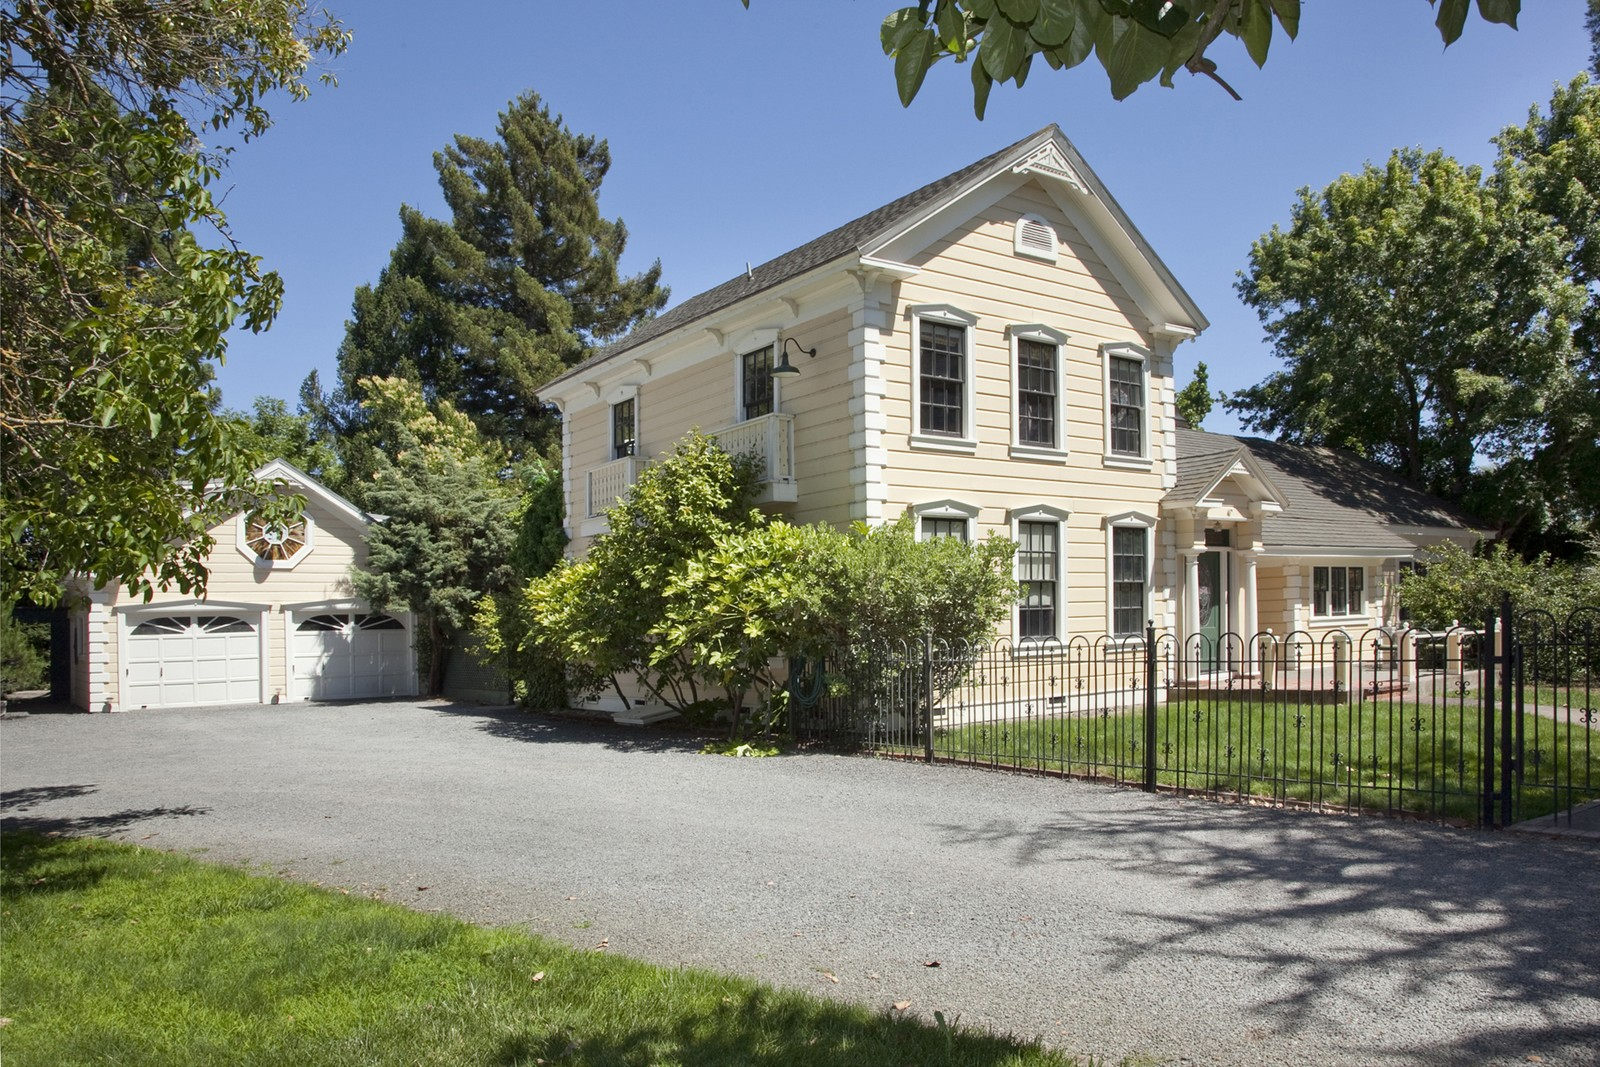 Maison unifamiliale pour l Vente à Greek Revival Farmhouse 4180 Barnes Road Santa Rosa, Californie, 95403 États-Unis